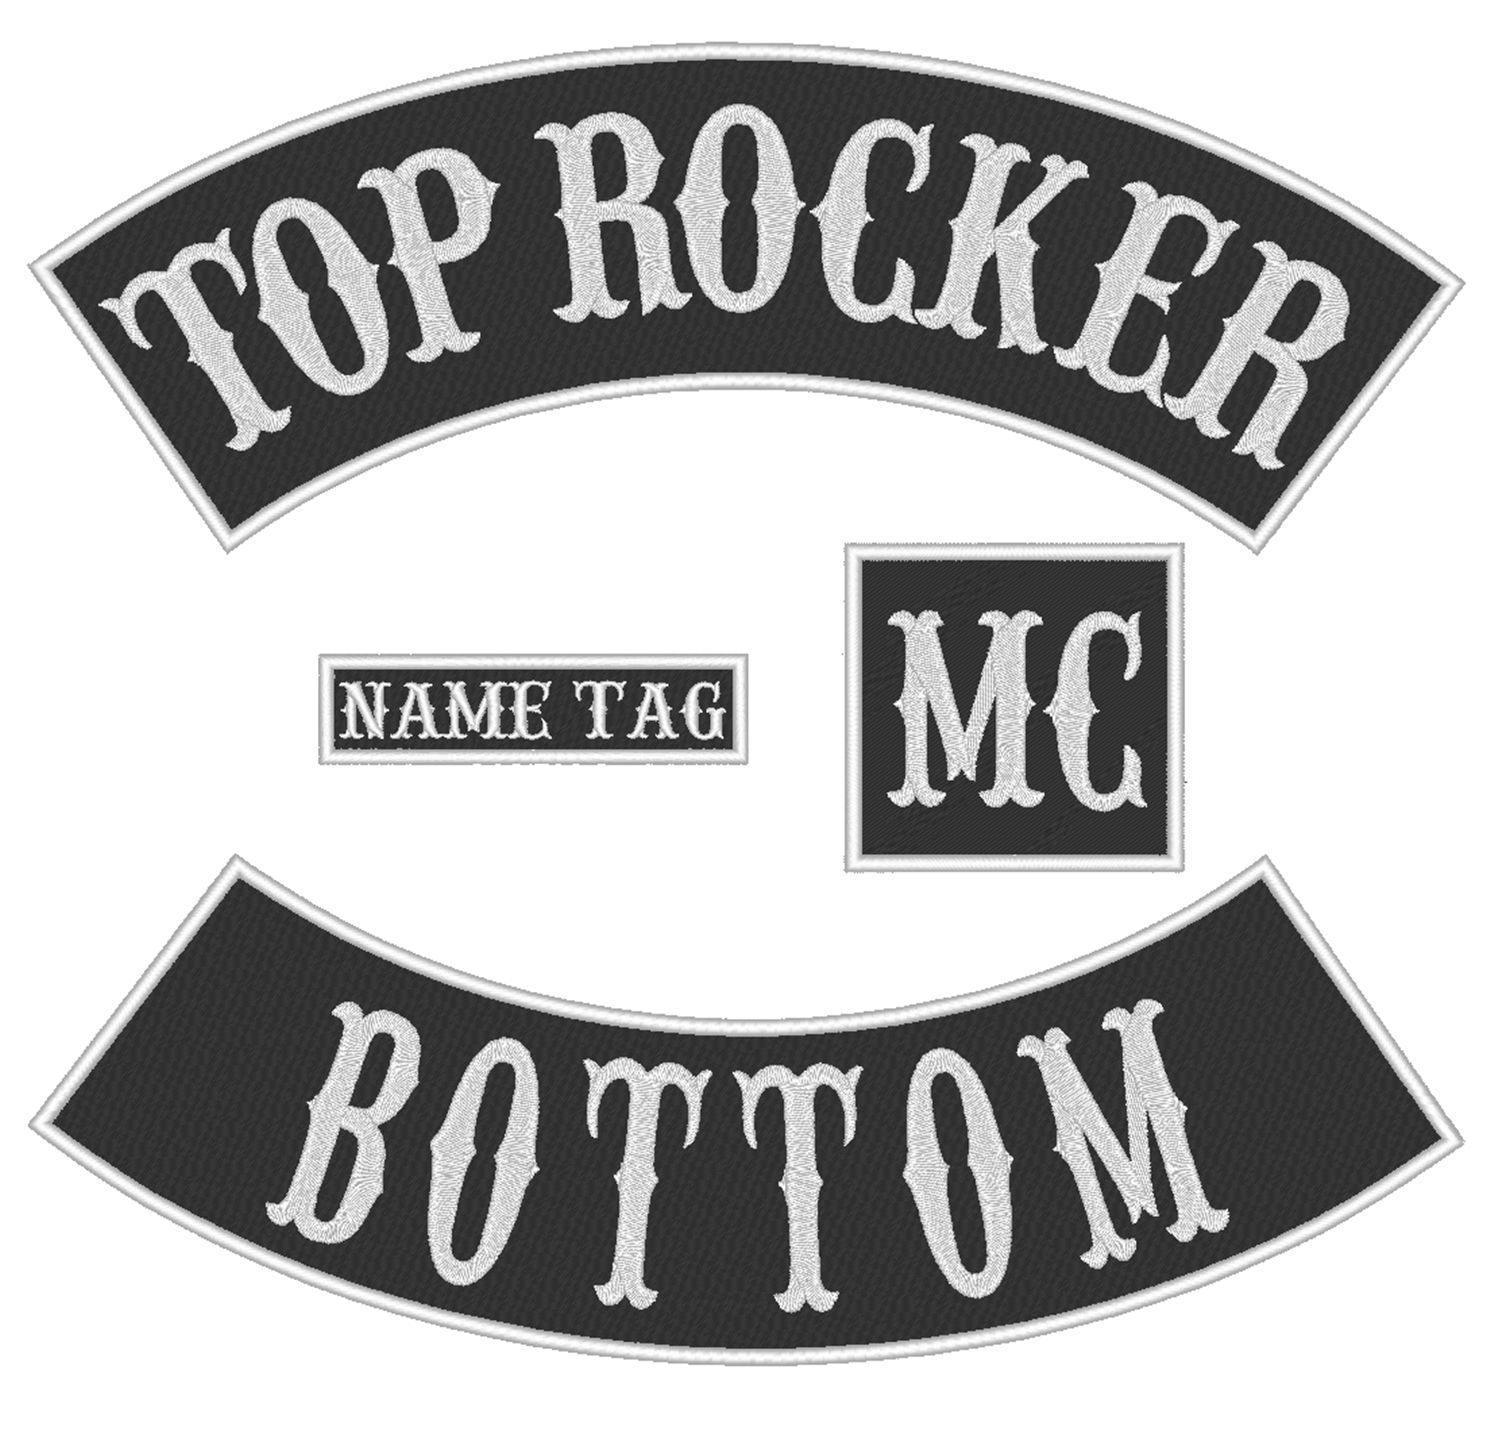 "Custom Embroidered 10"" Full Vest Set Rocker Patch Biker Badge (B) - 4 PC"